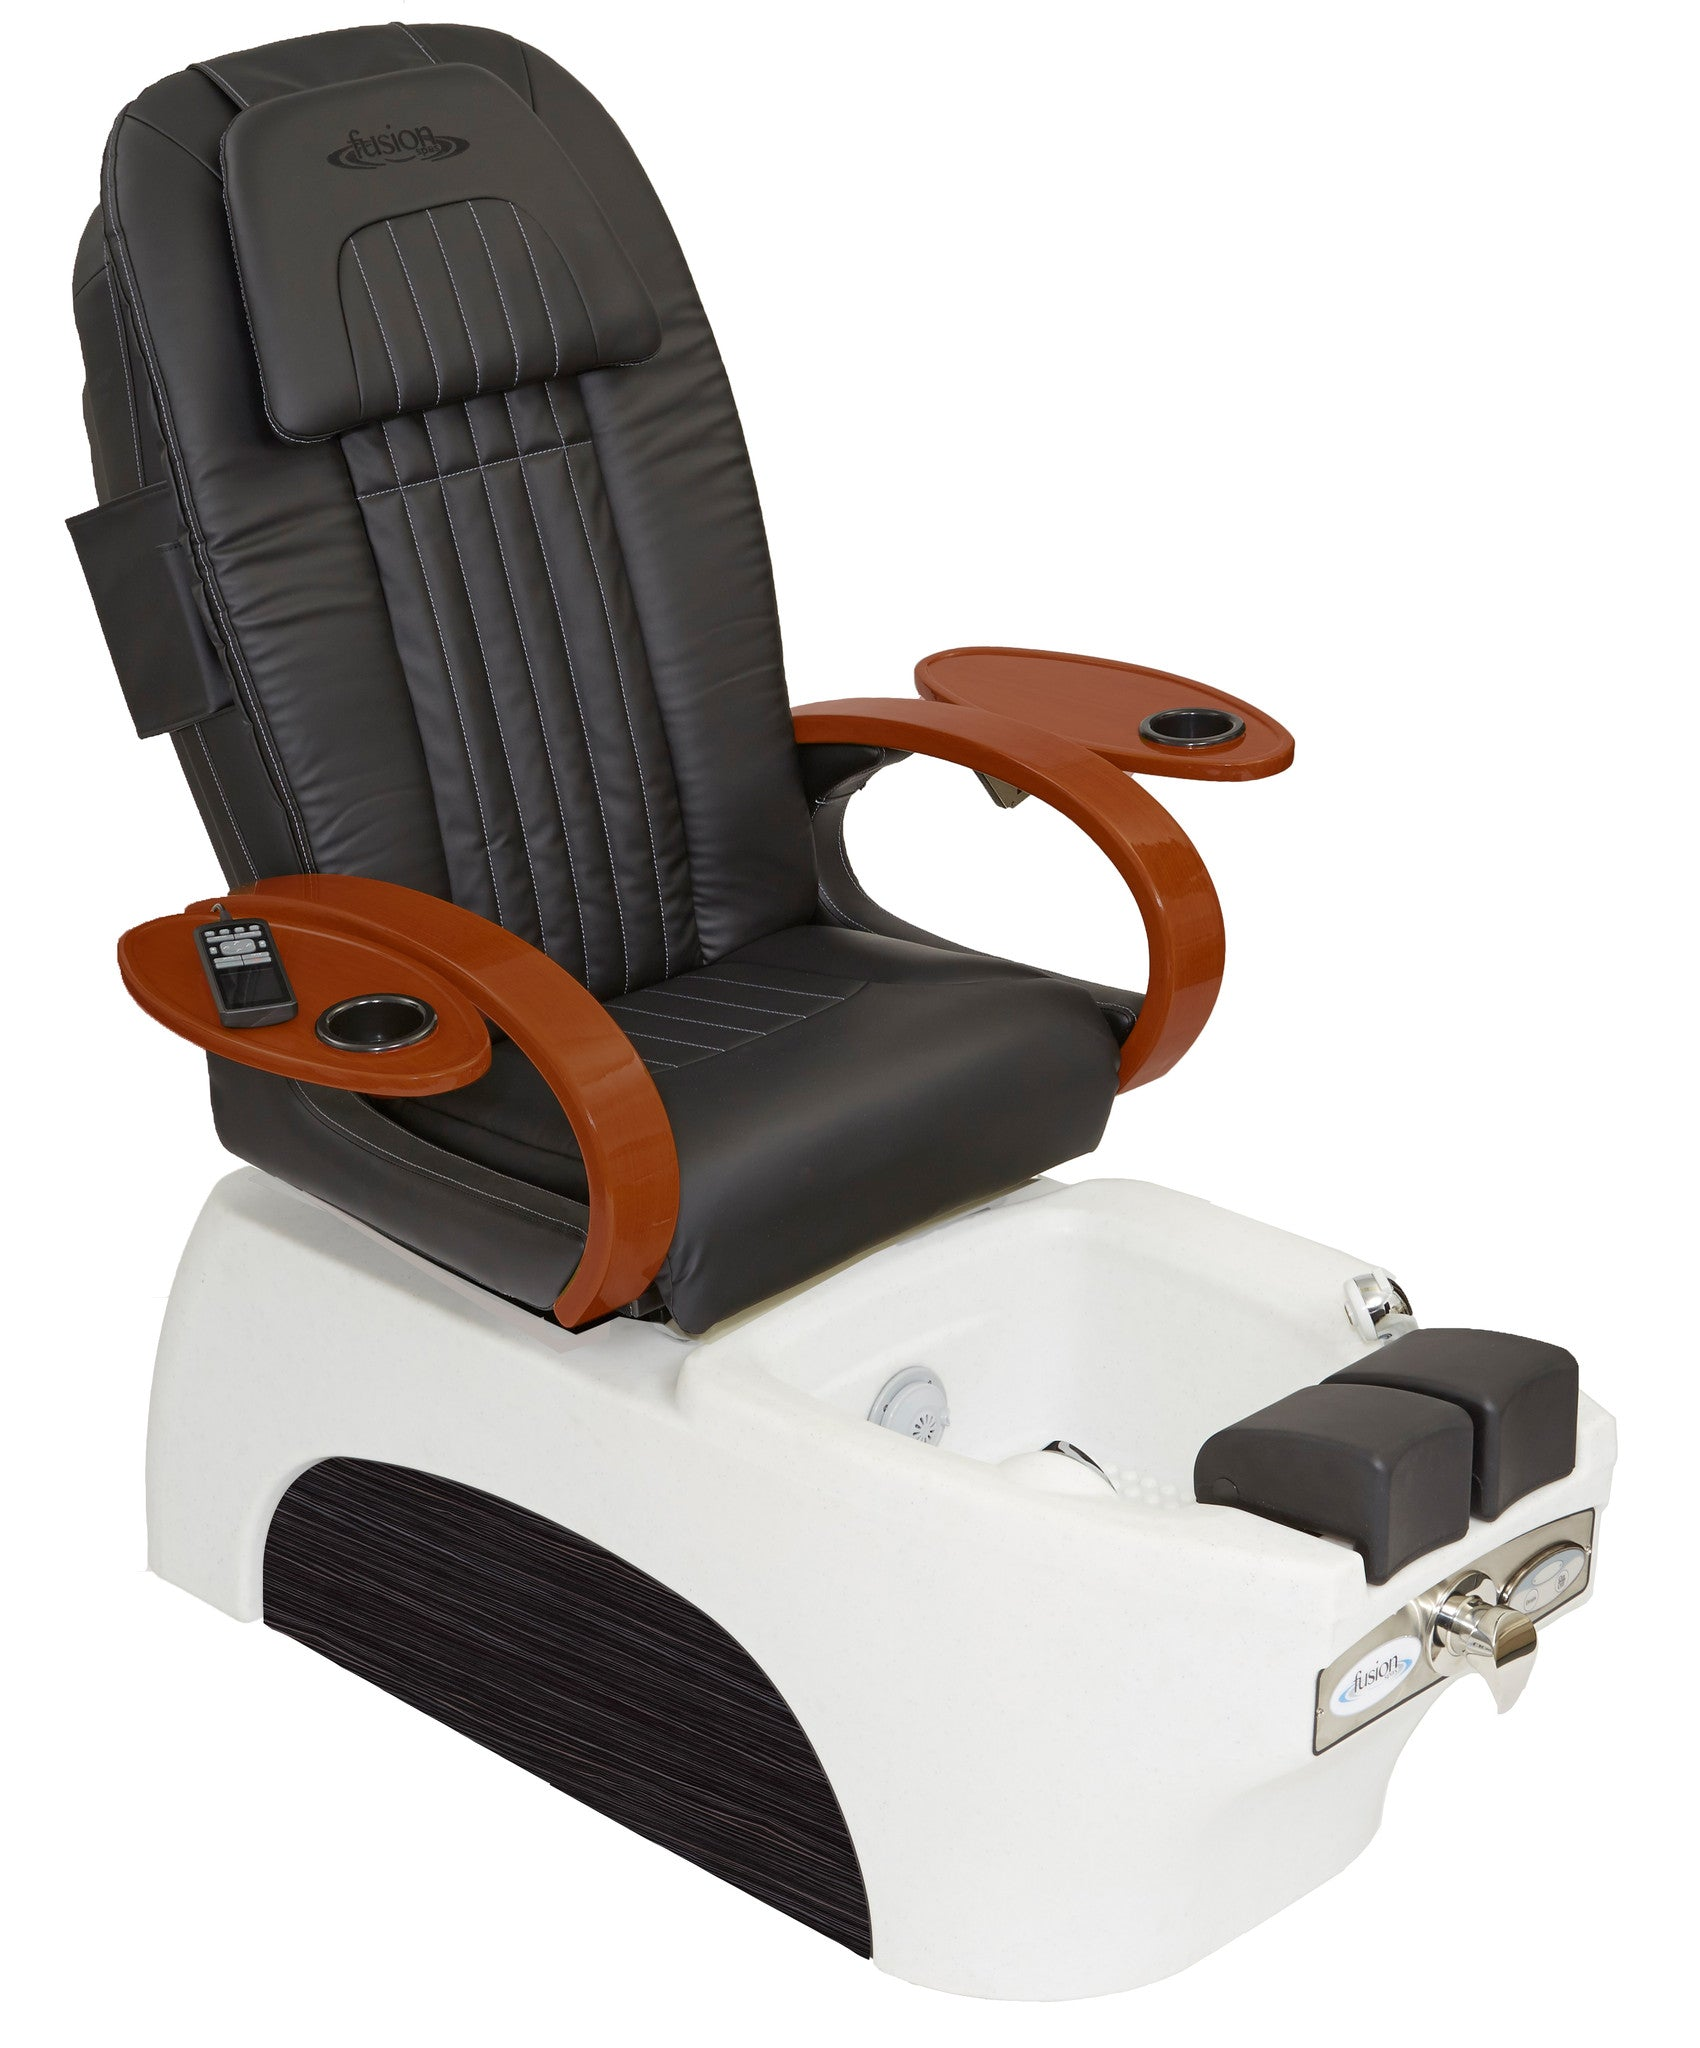 p cs by chairs comfortsoul email alpina qk photo view chair larger htm pedicure